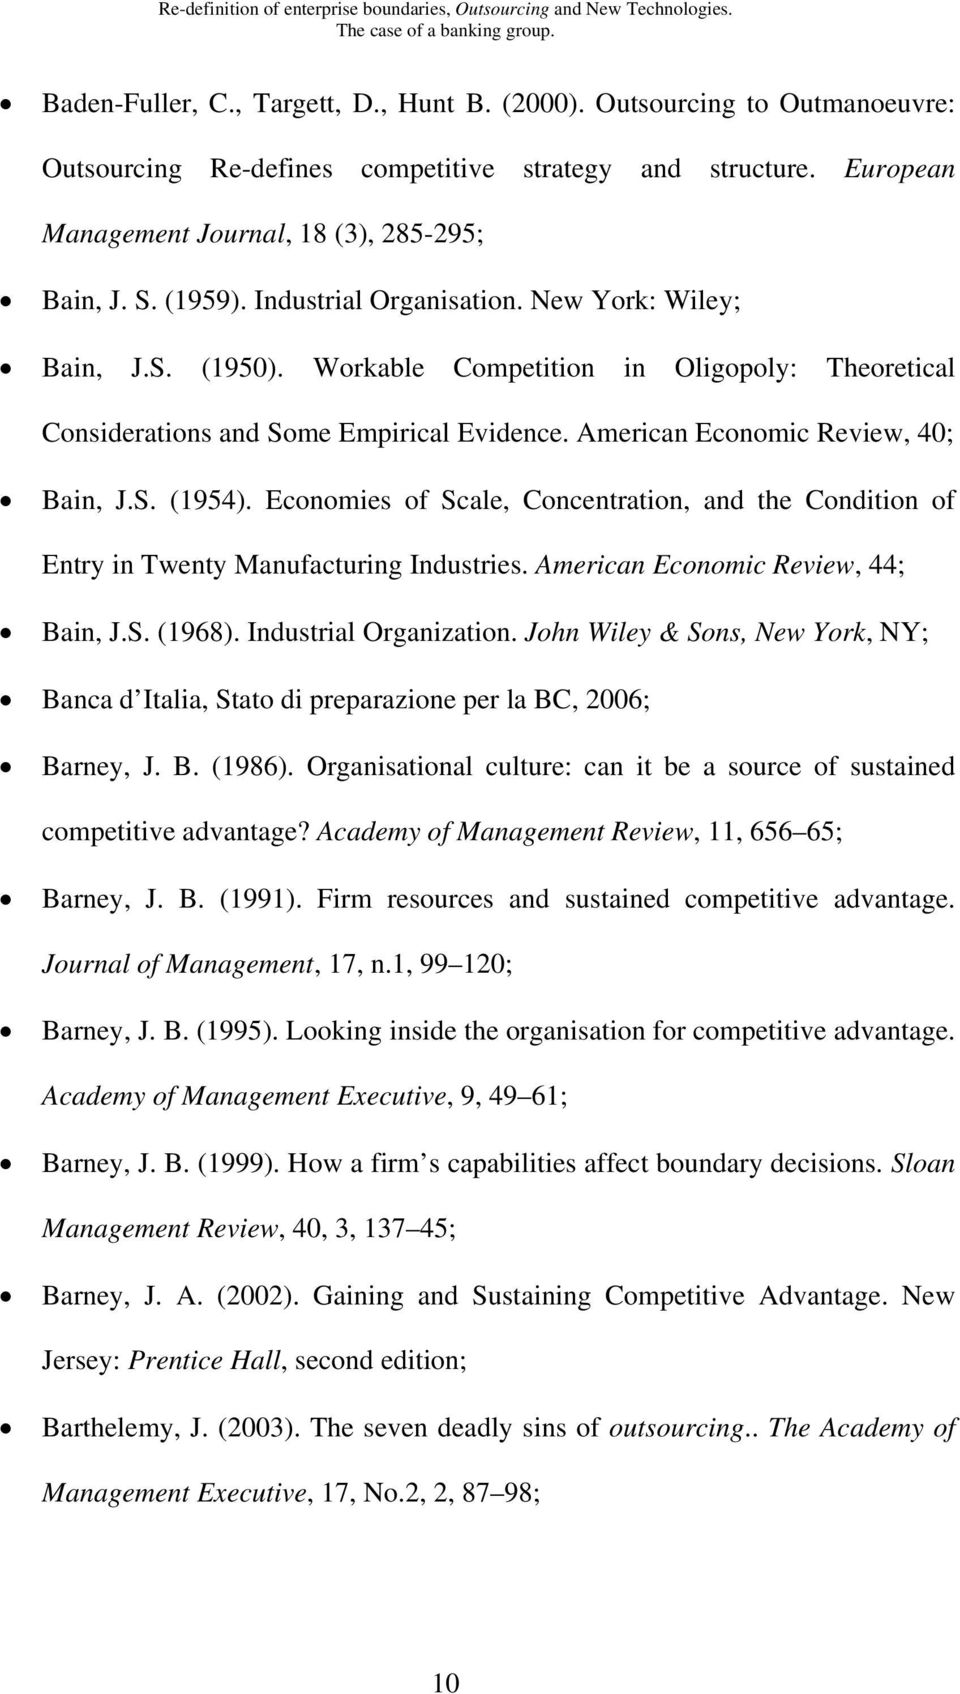 Economies of Scale, Concentration, and the Condition of Entry in Twenty Manufacturing Industries. American Economic Review, 44; Bain, J.S. (1968). Industrial Organization.